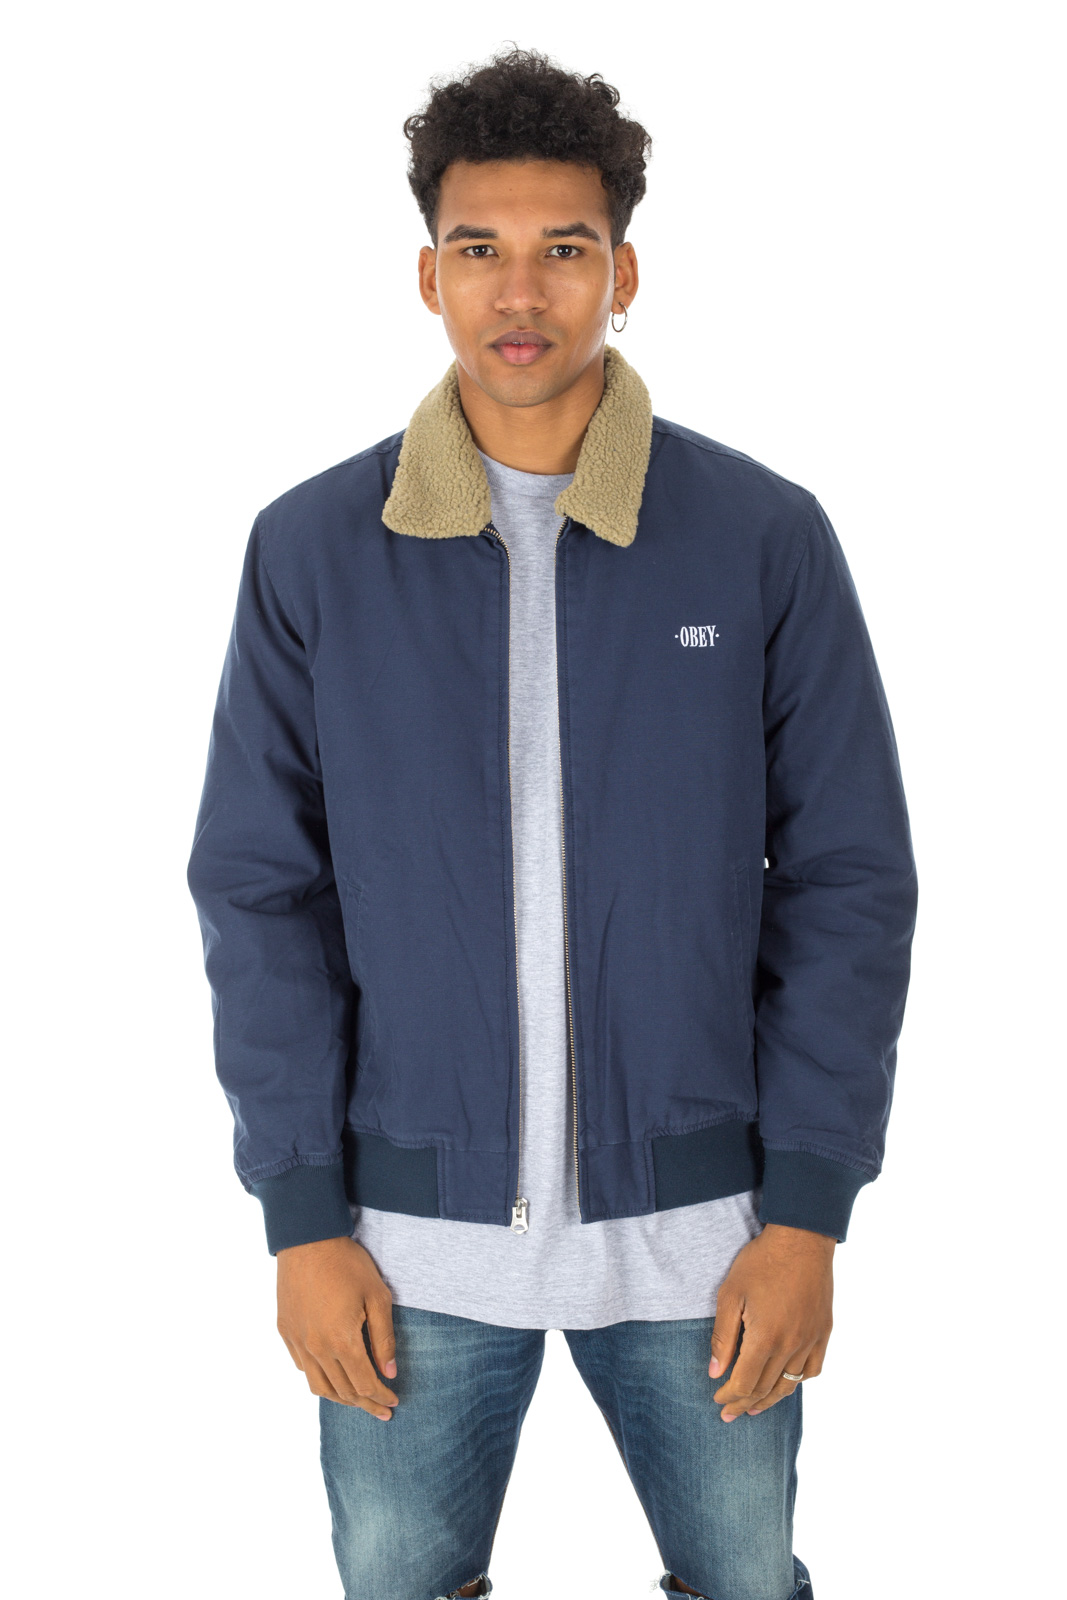 Obey - Blue Clubber Jacket